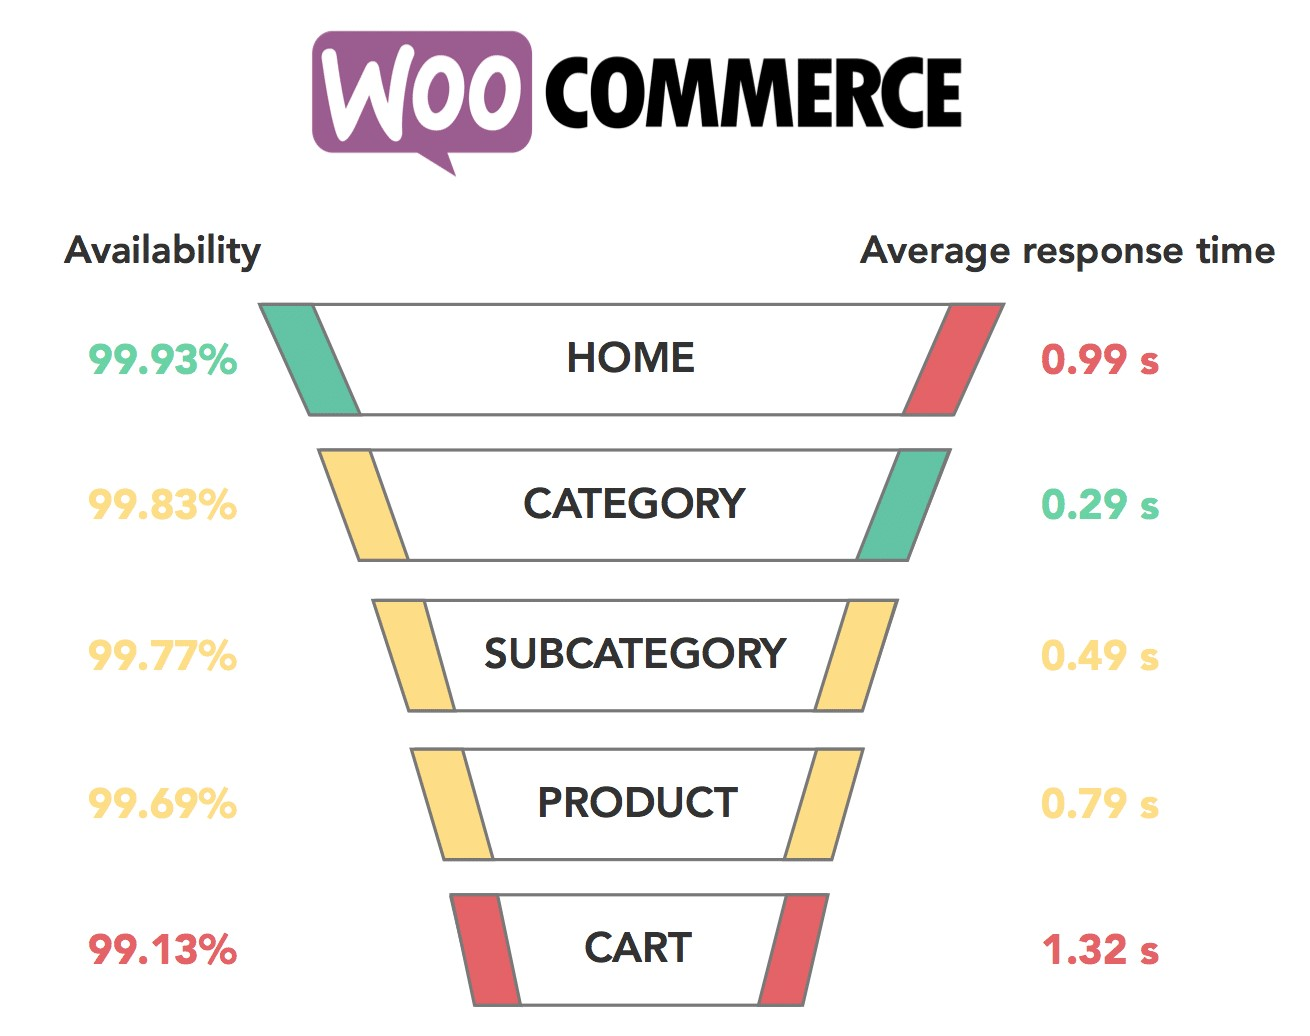 Response time specifications of WooCommerce (Source: Quanta)